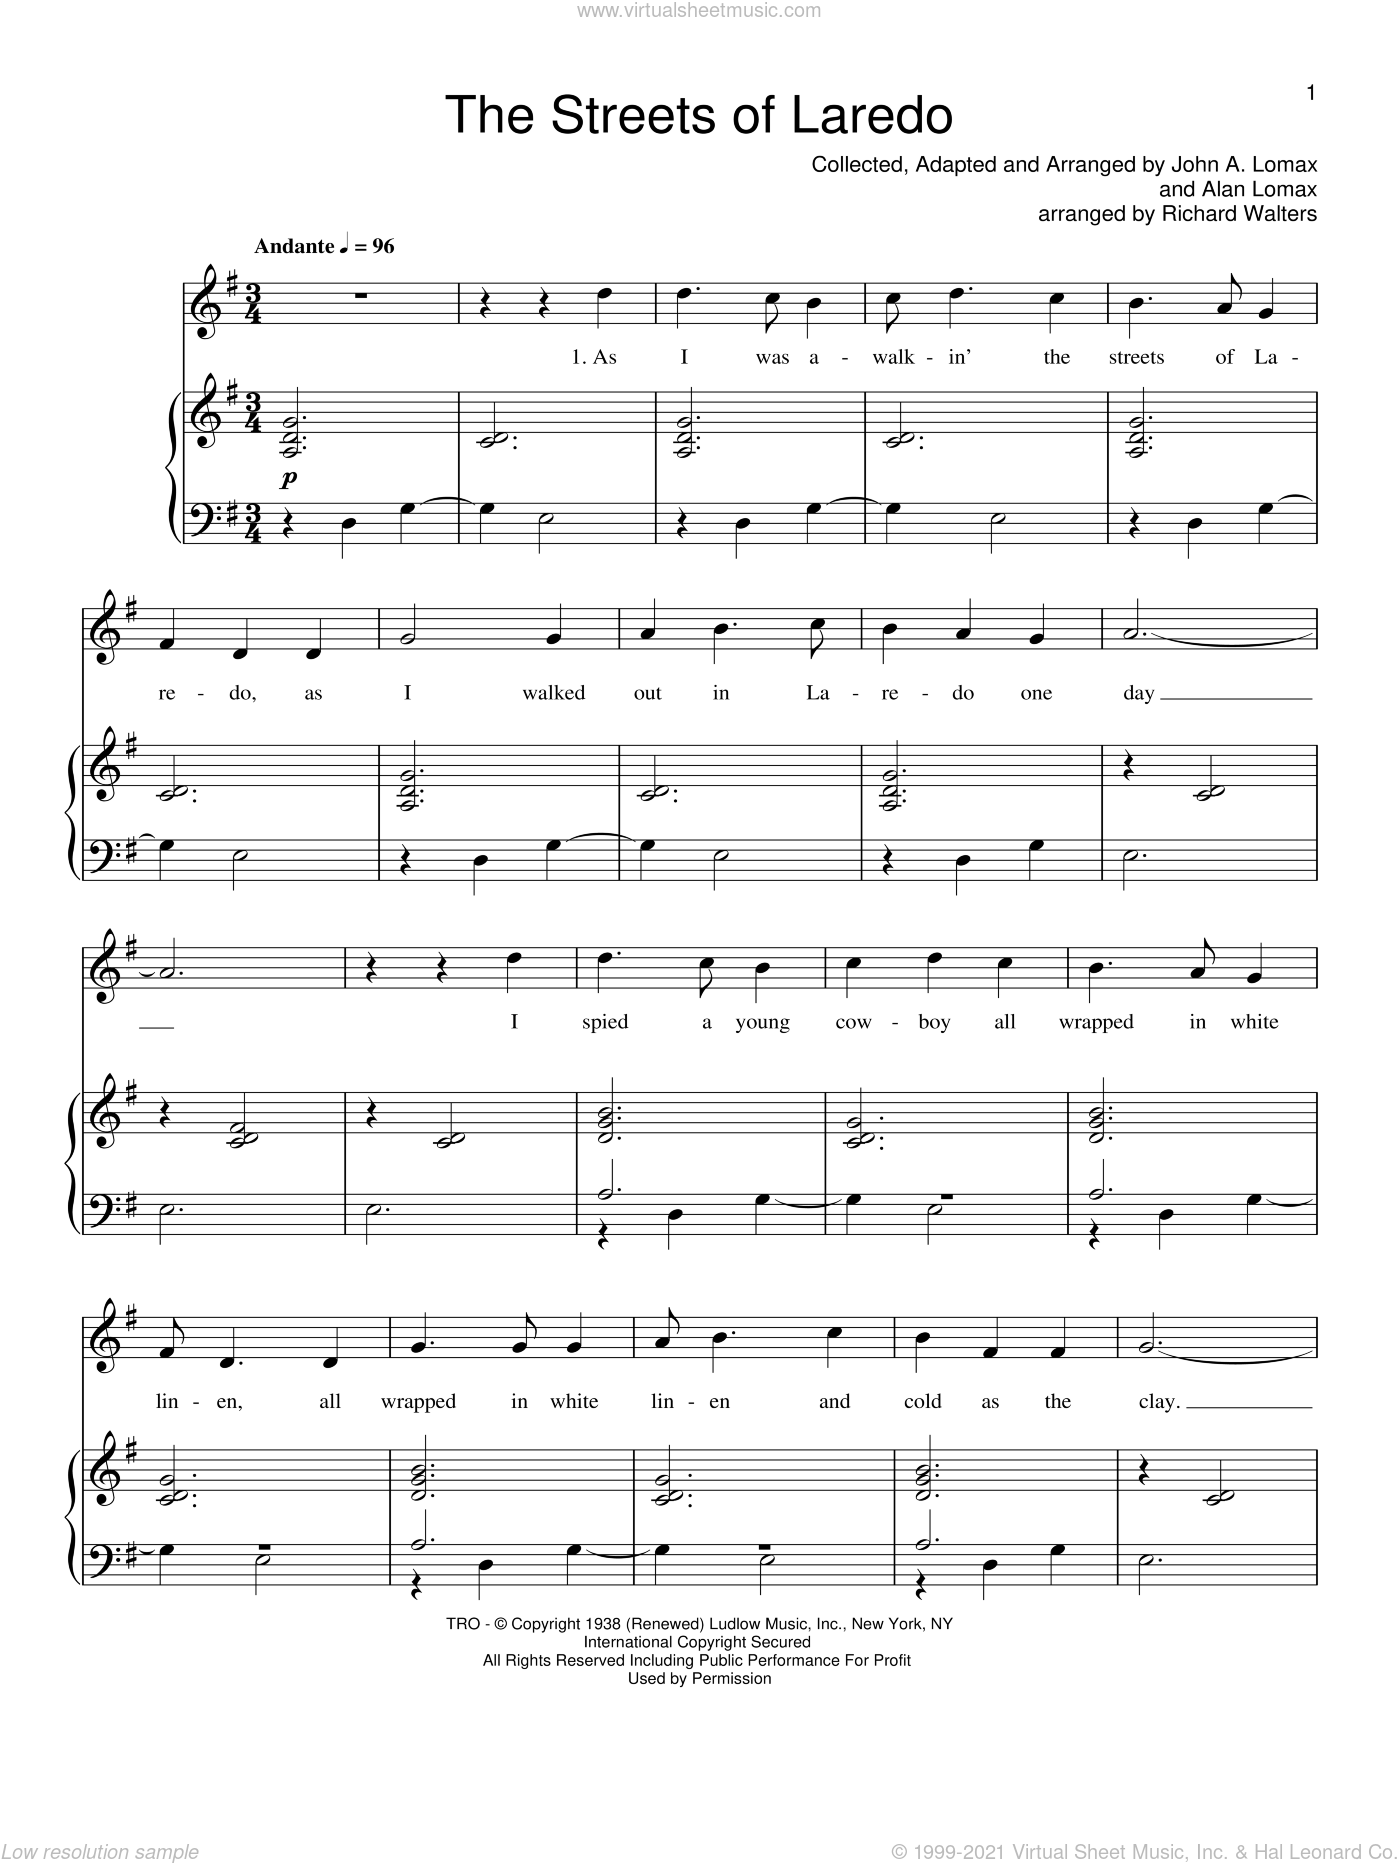 The Streets Of Laredo sheet music for voice, piano or guitar